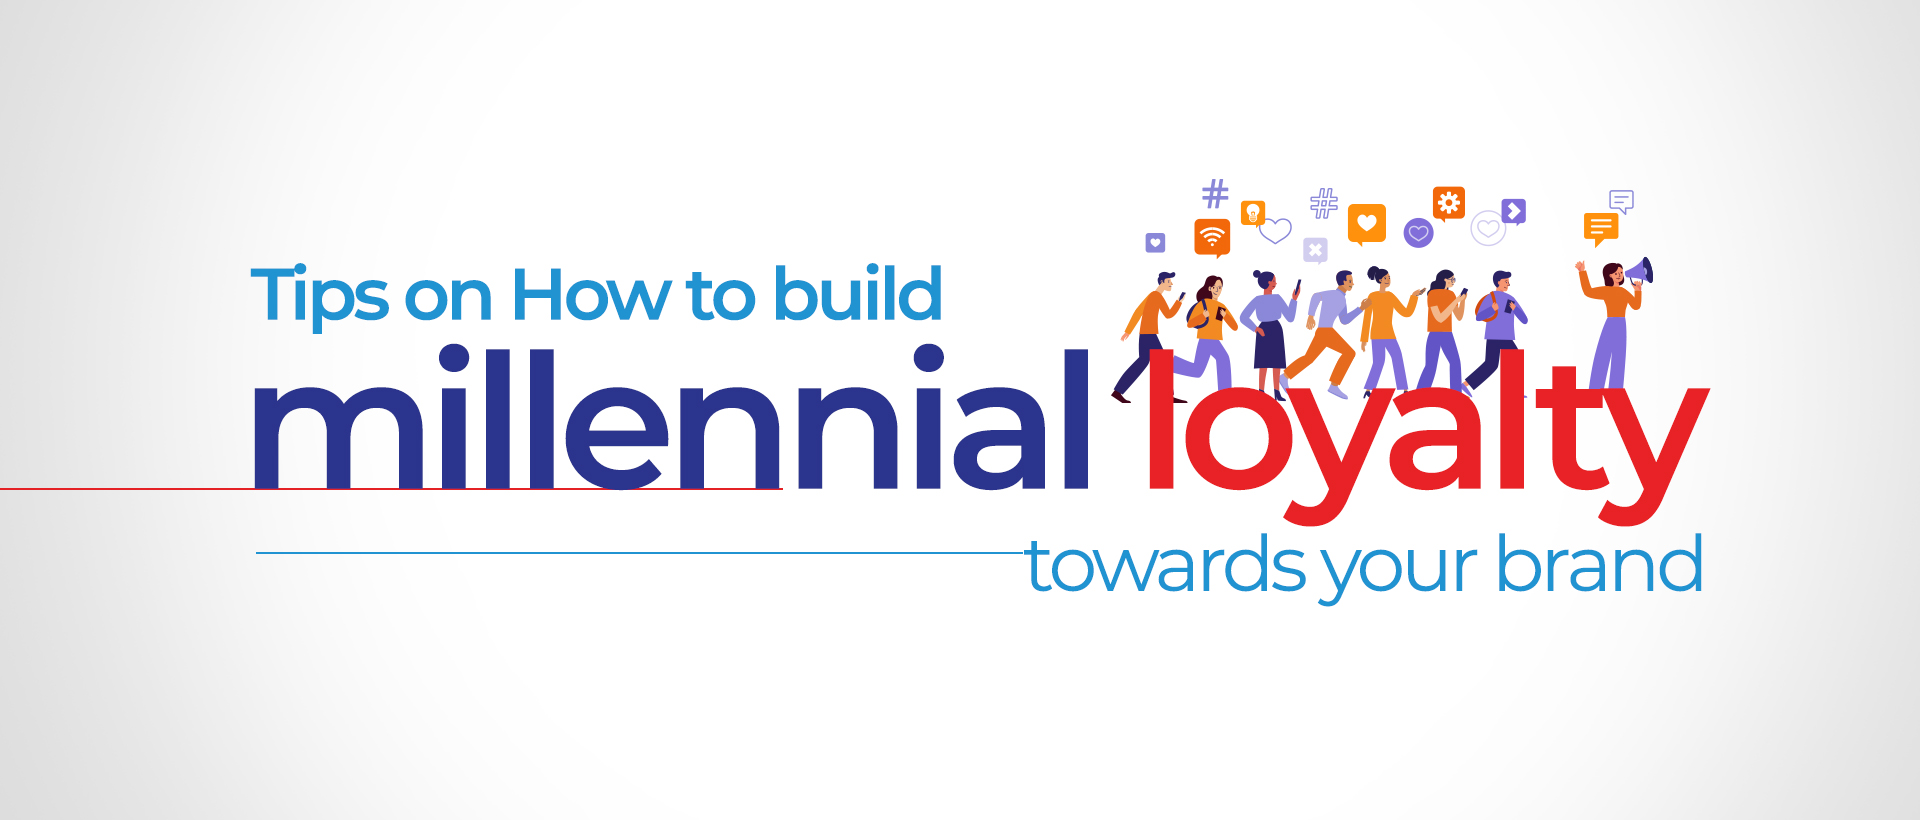 Tips on How to build millennial loyalty towards your brand